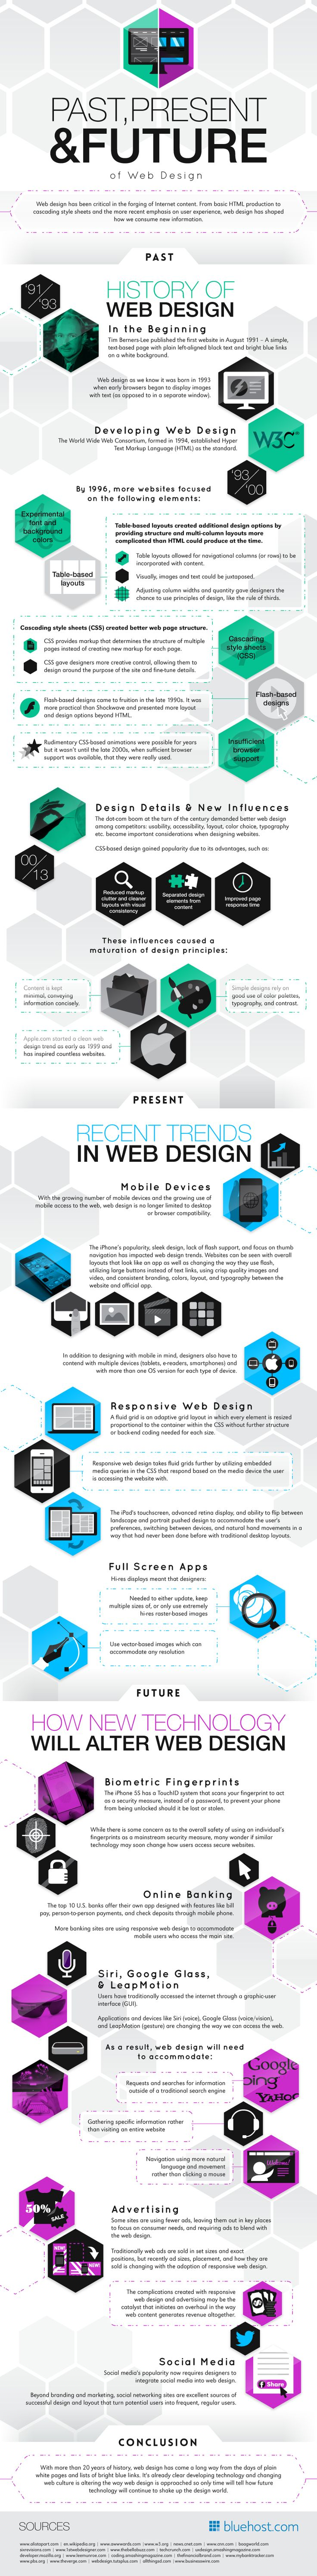 Past, Present, and Future of Web Design - #Infographic